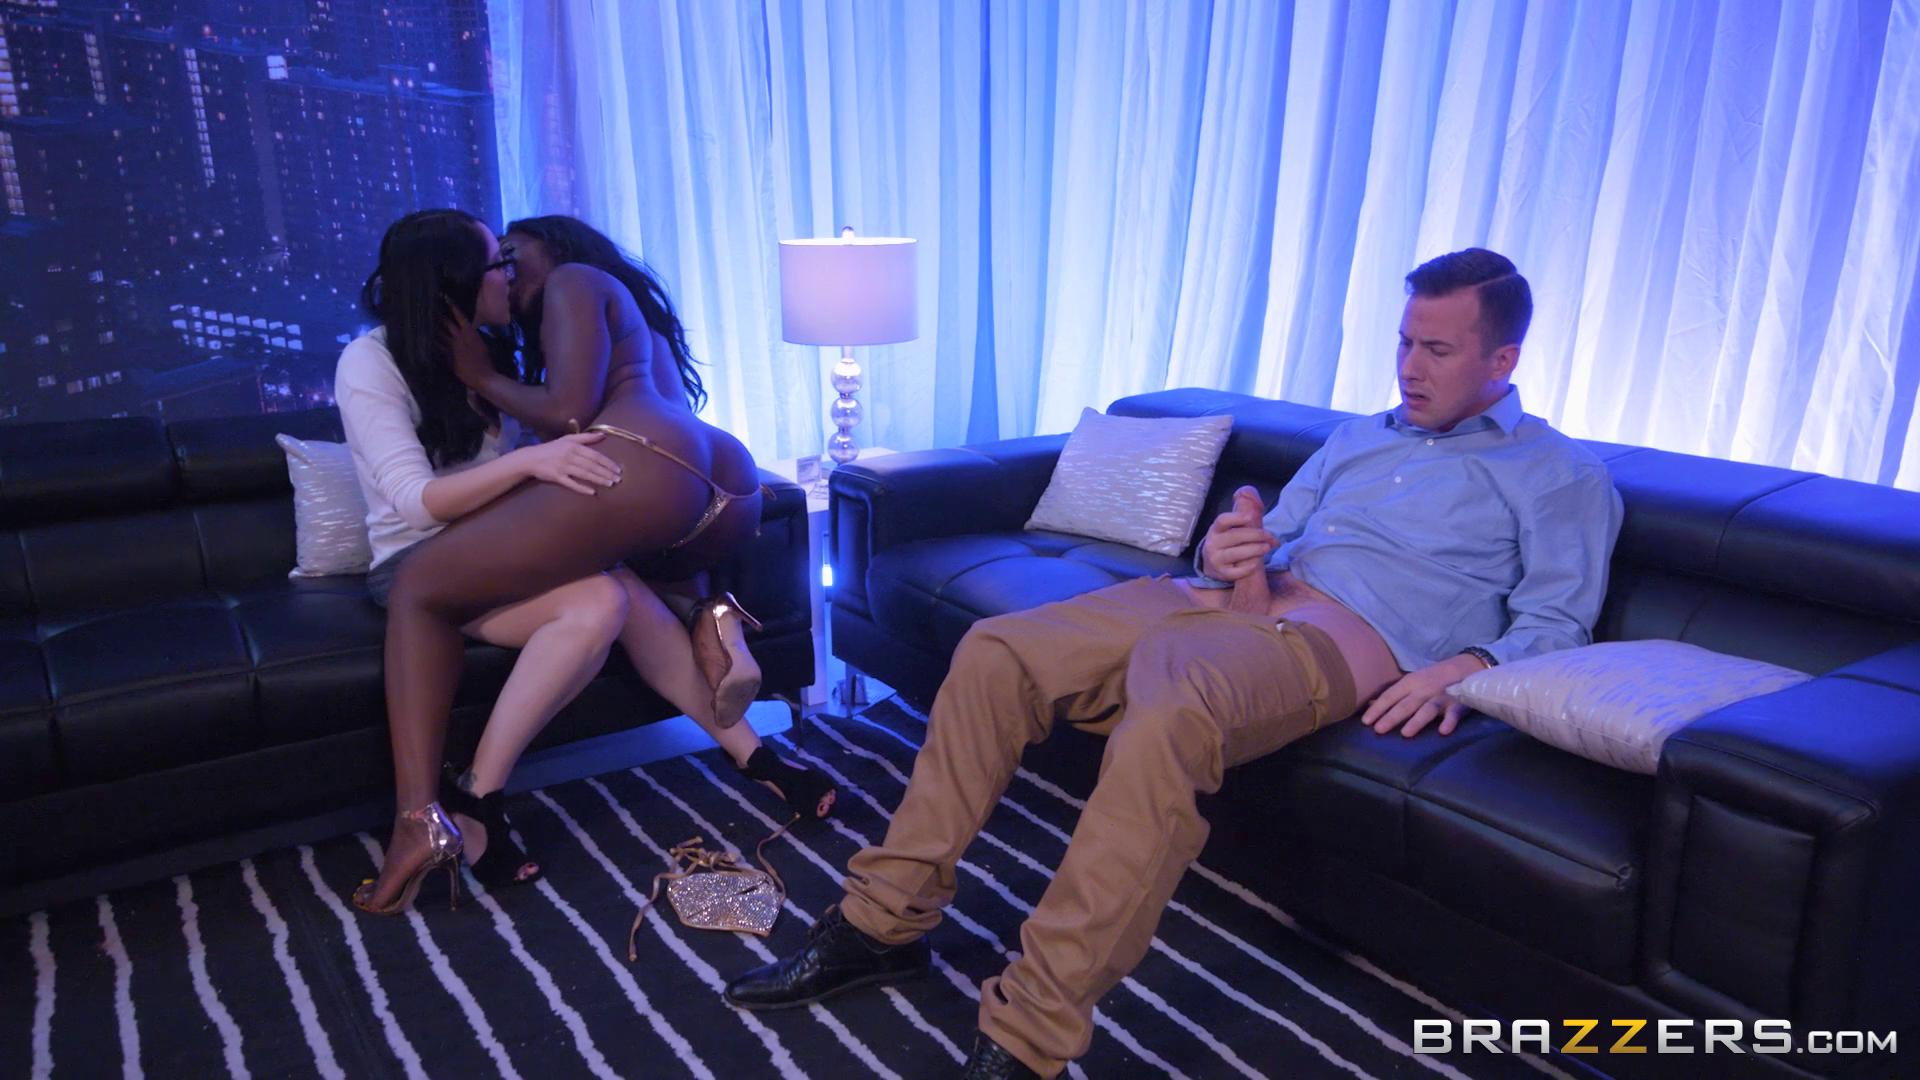 BrazzersExxtra – Nickey Huntsman And Osa Lovely Strip Club Surprise